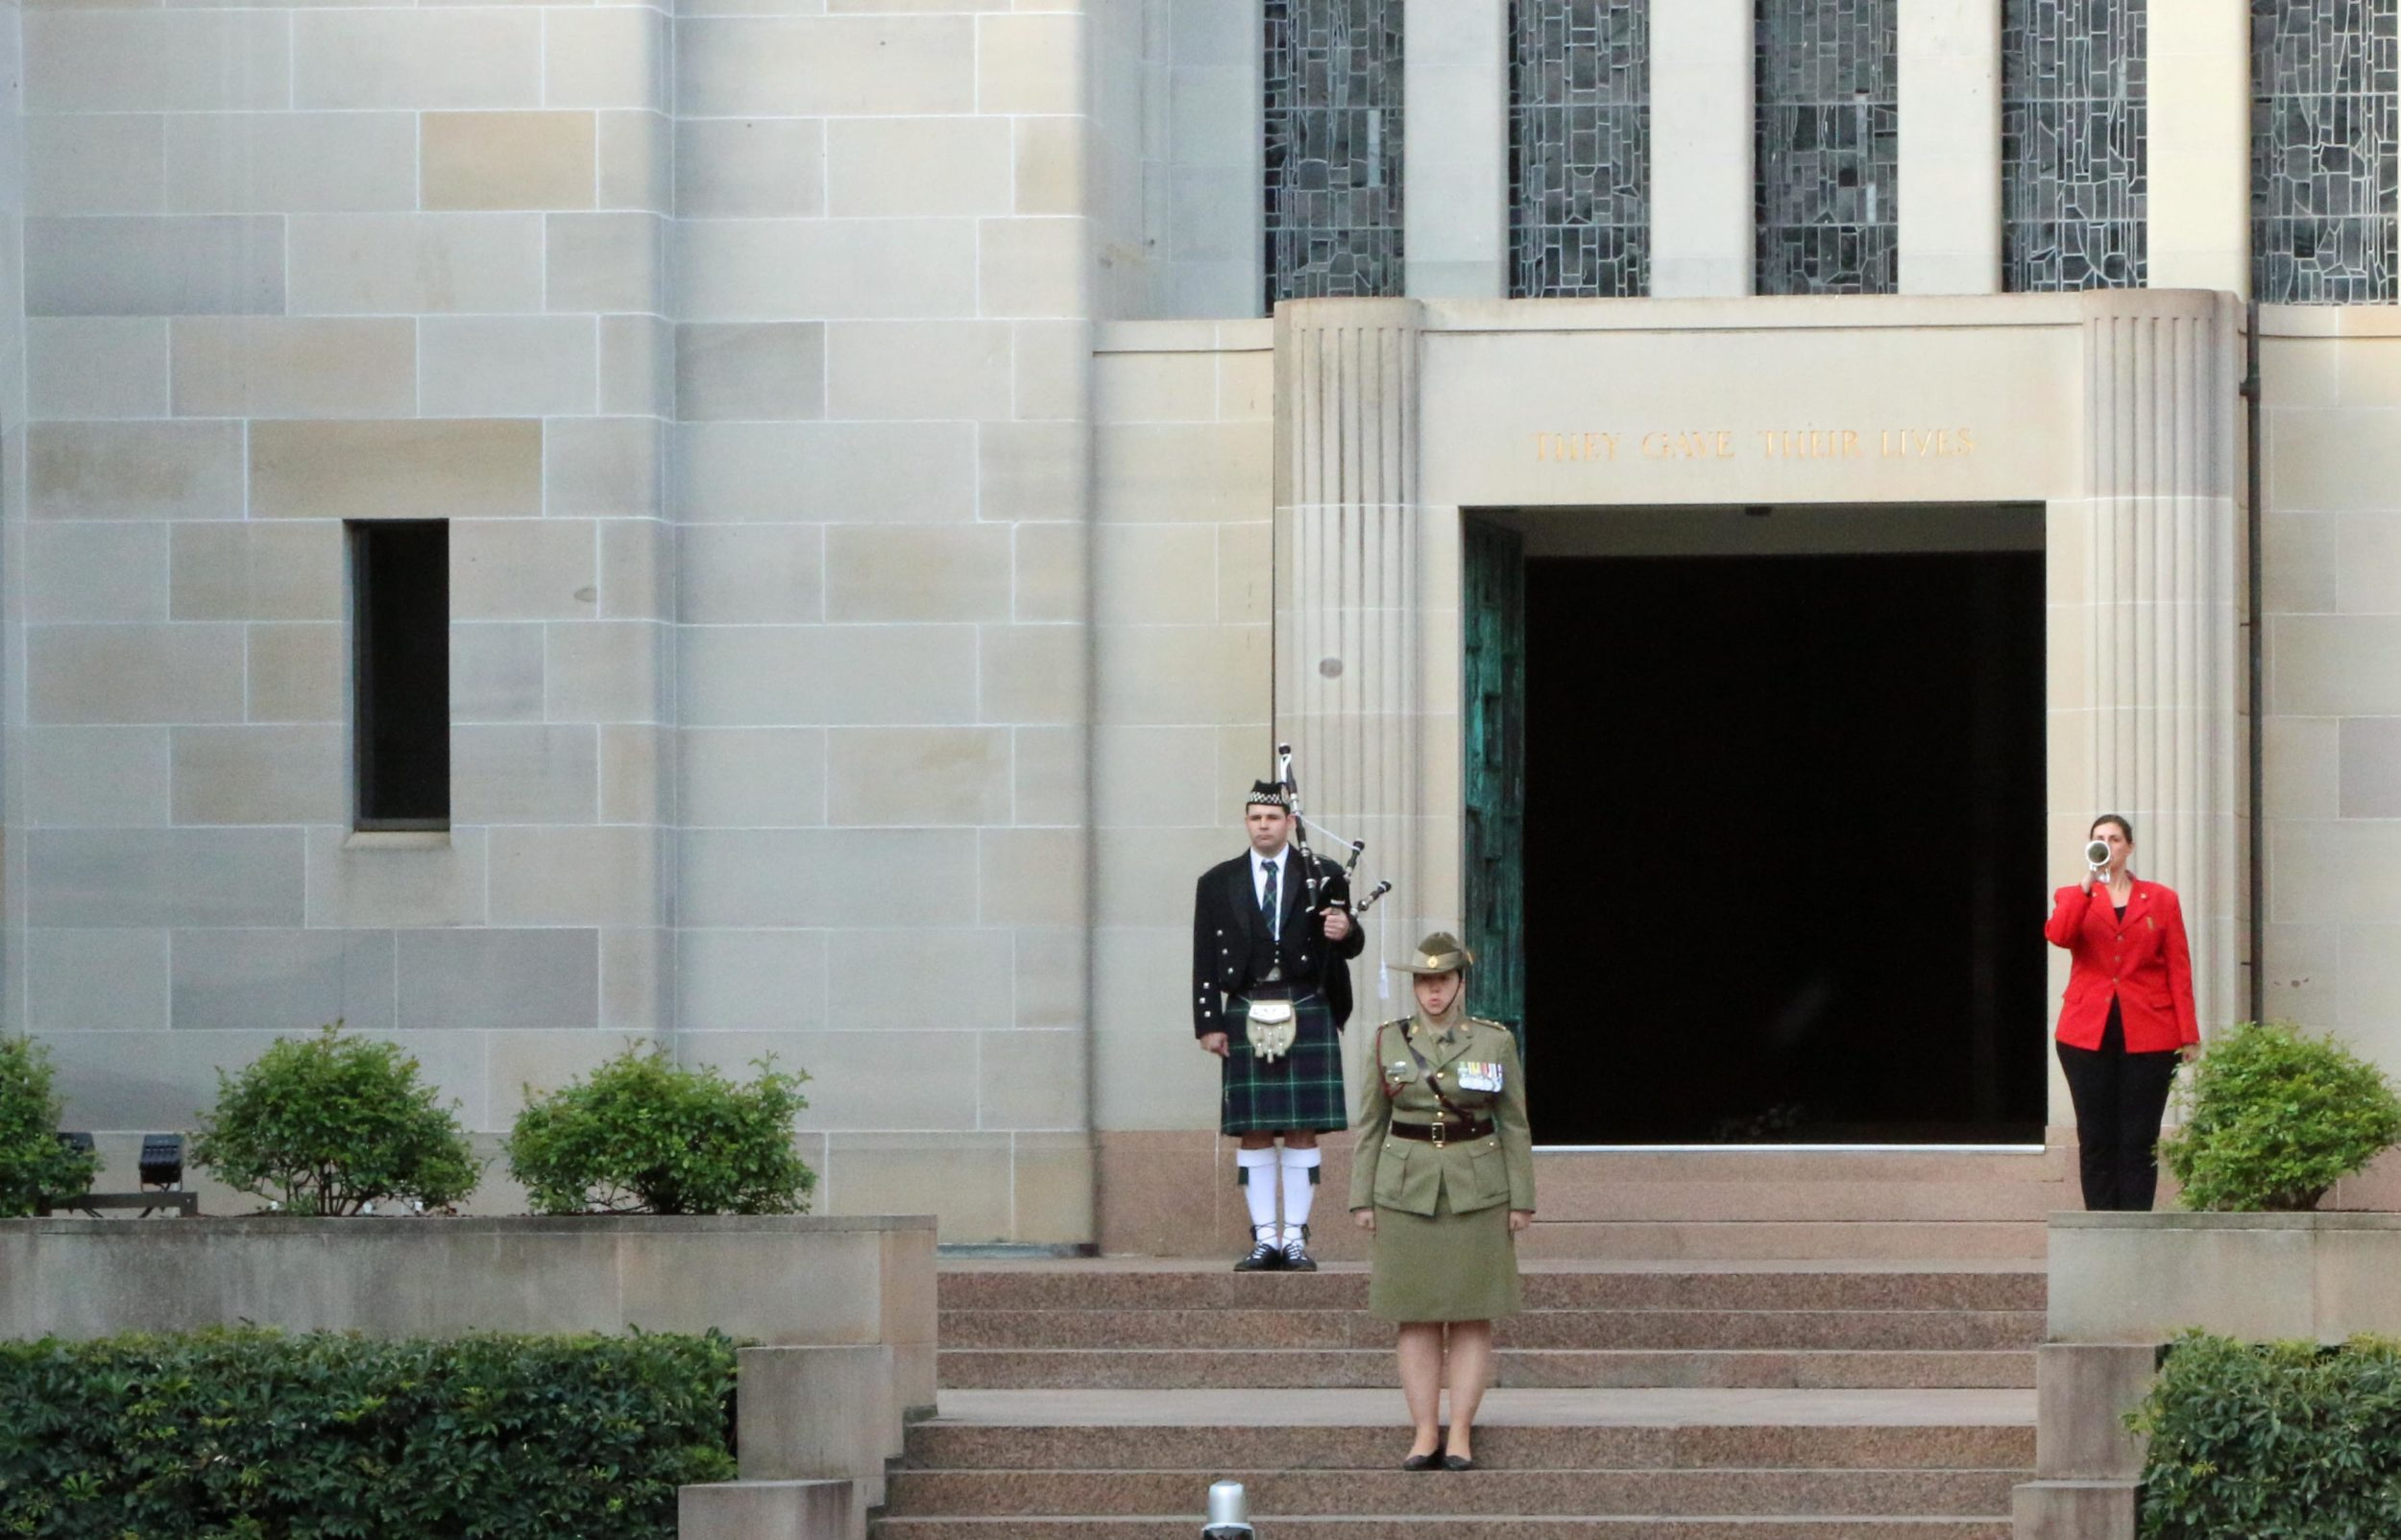 The Last Post Ceremony at the Australian War Memorial in Canberra